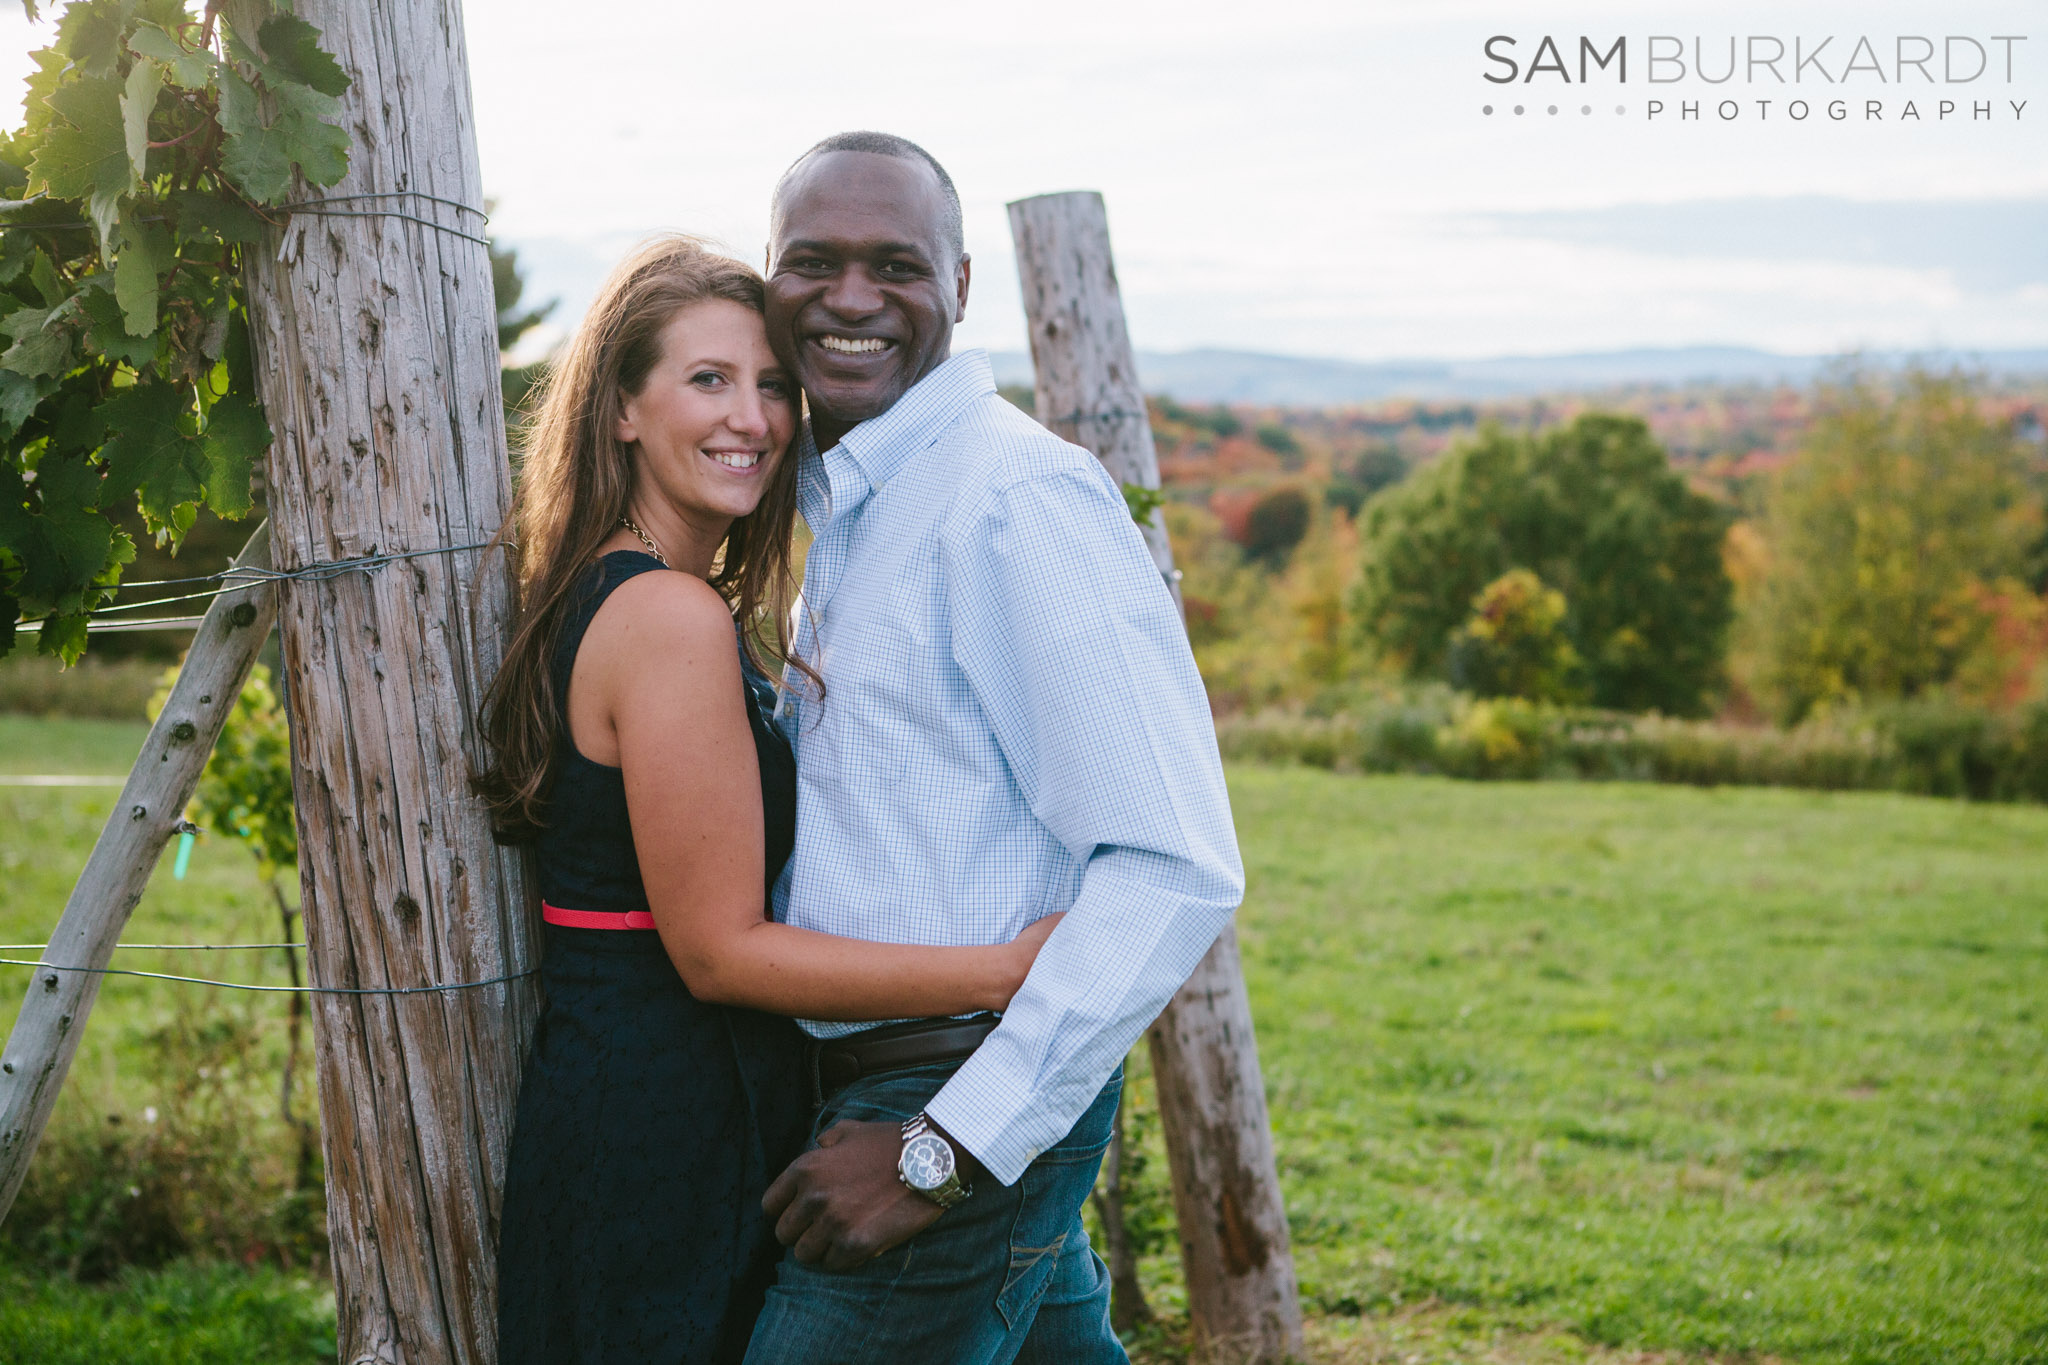 samburkardt-fall-engagement-connecticut-vineyard-nature-wine_0011.jpg